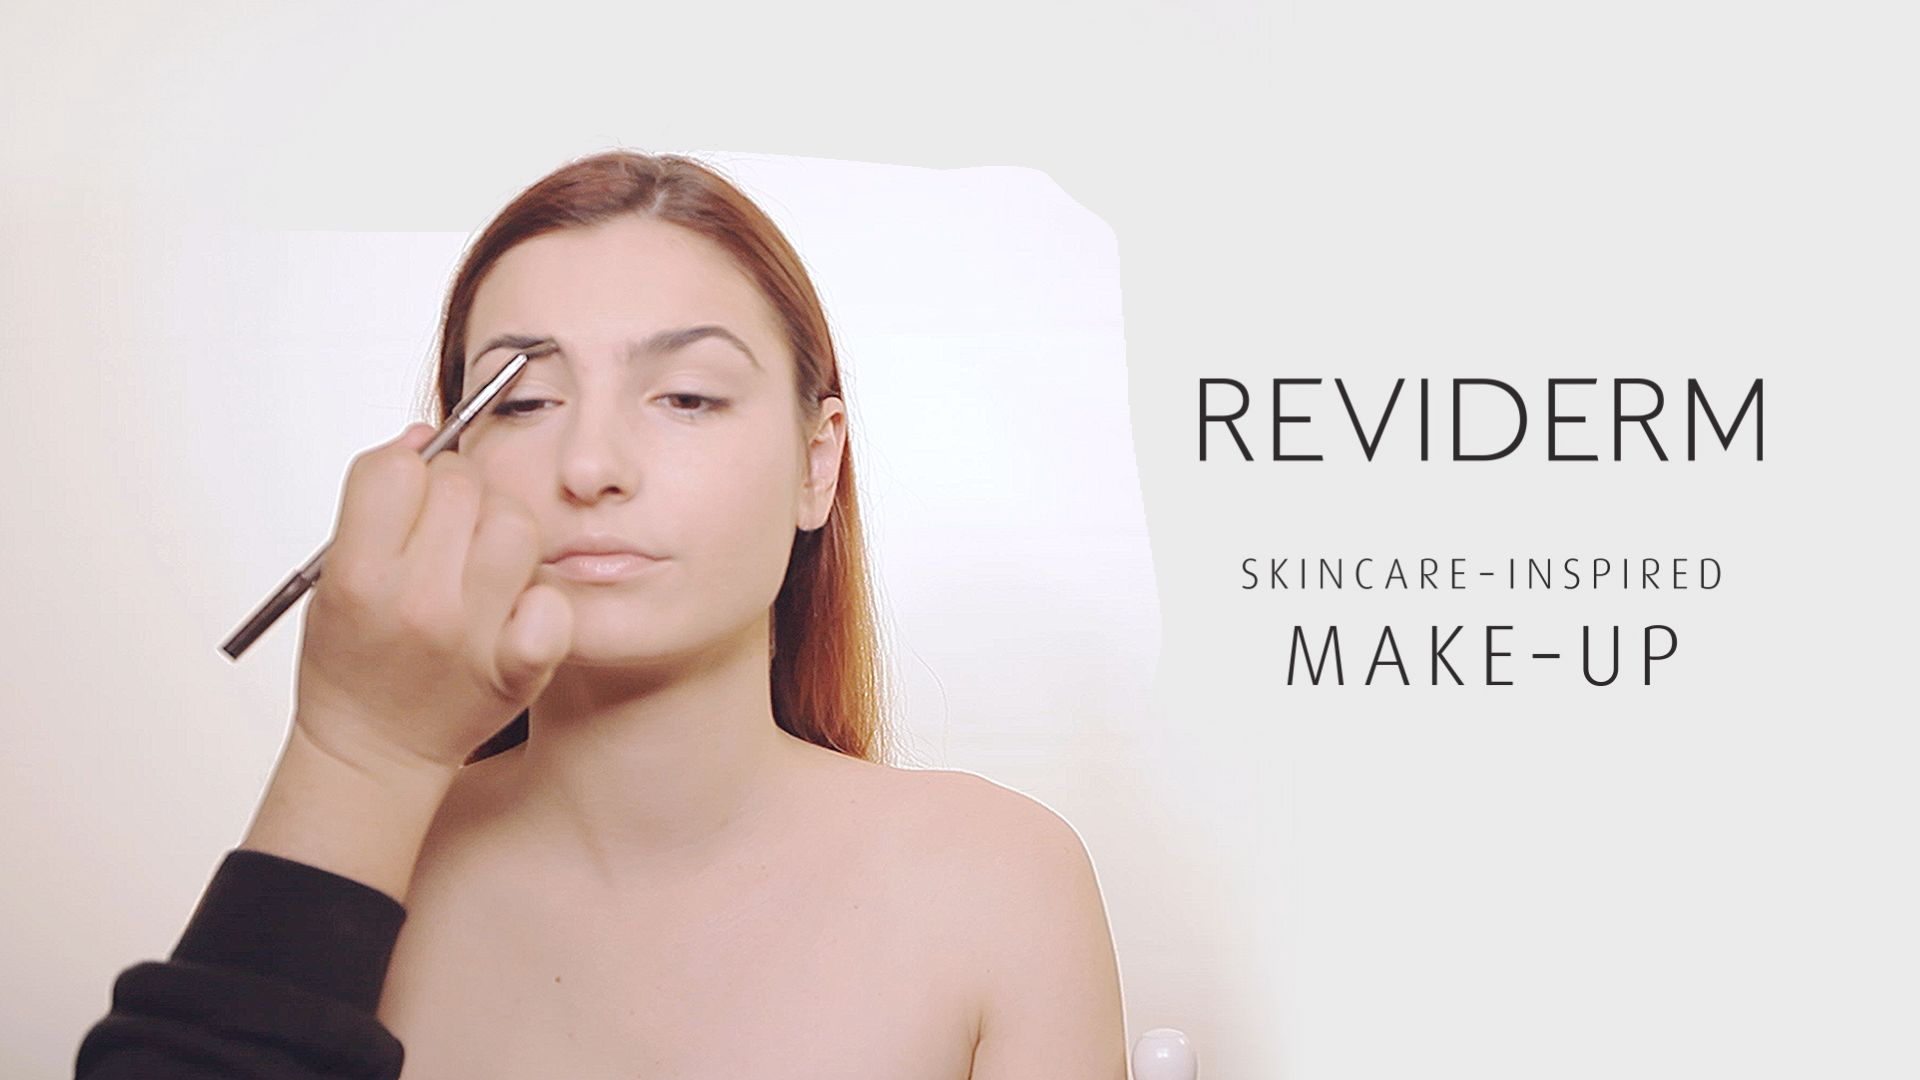 Reviderm make up minute 1